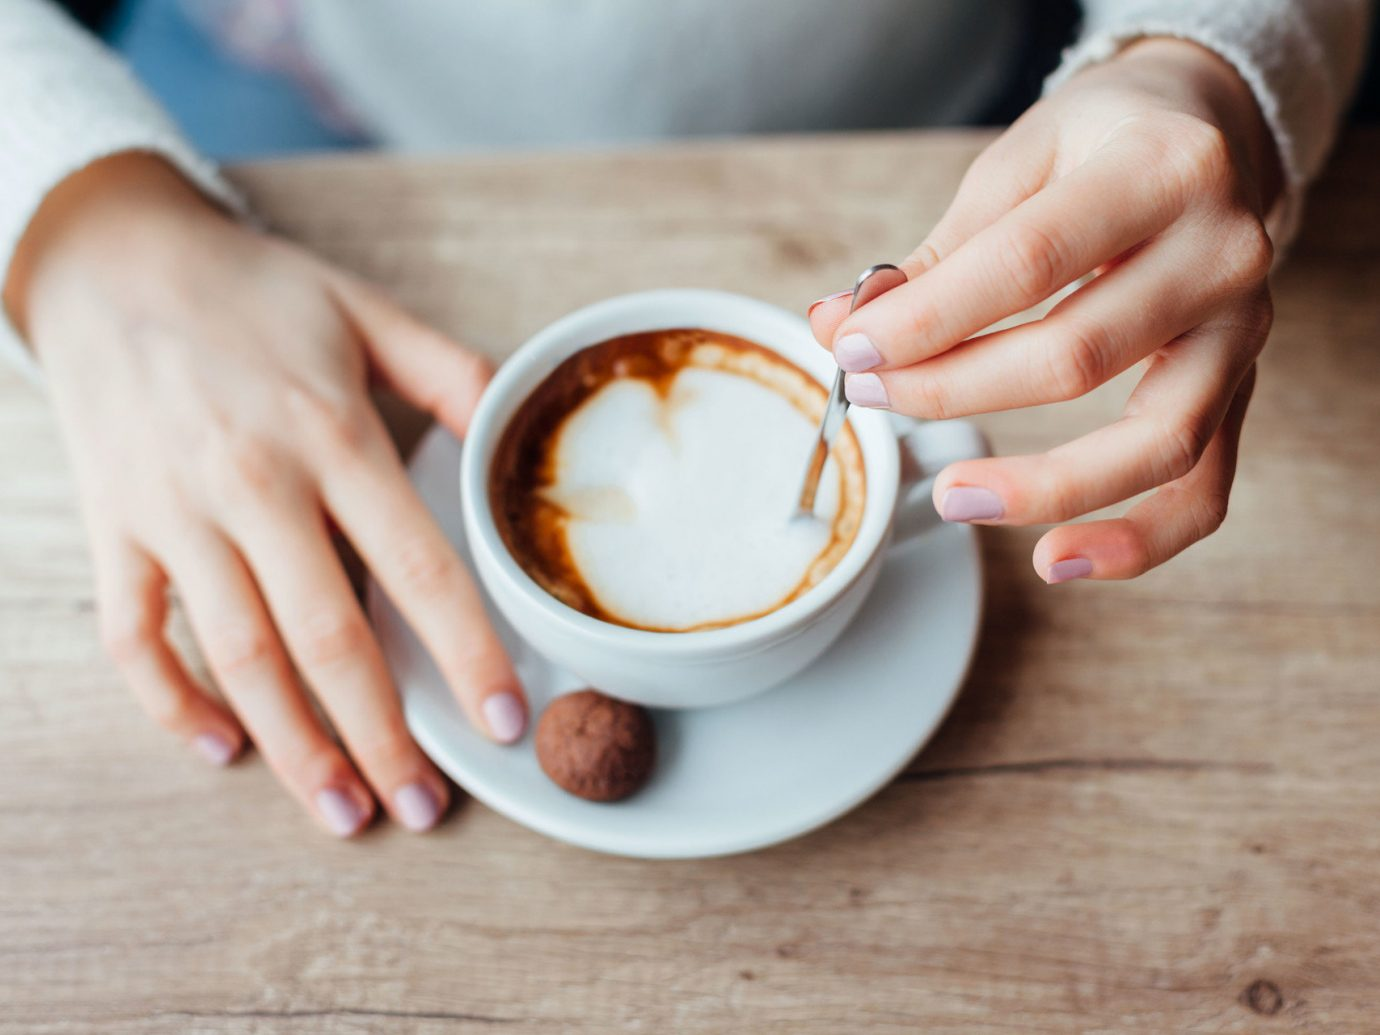 Girl stirring a cup of coffee.